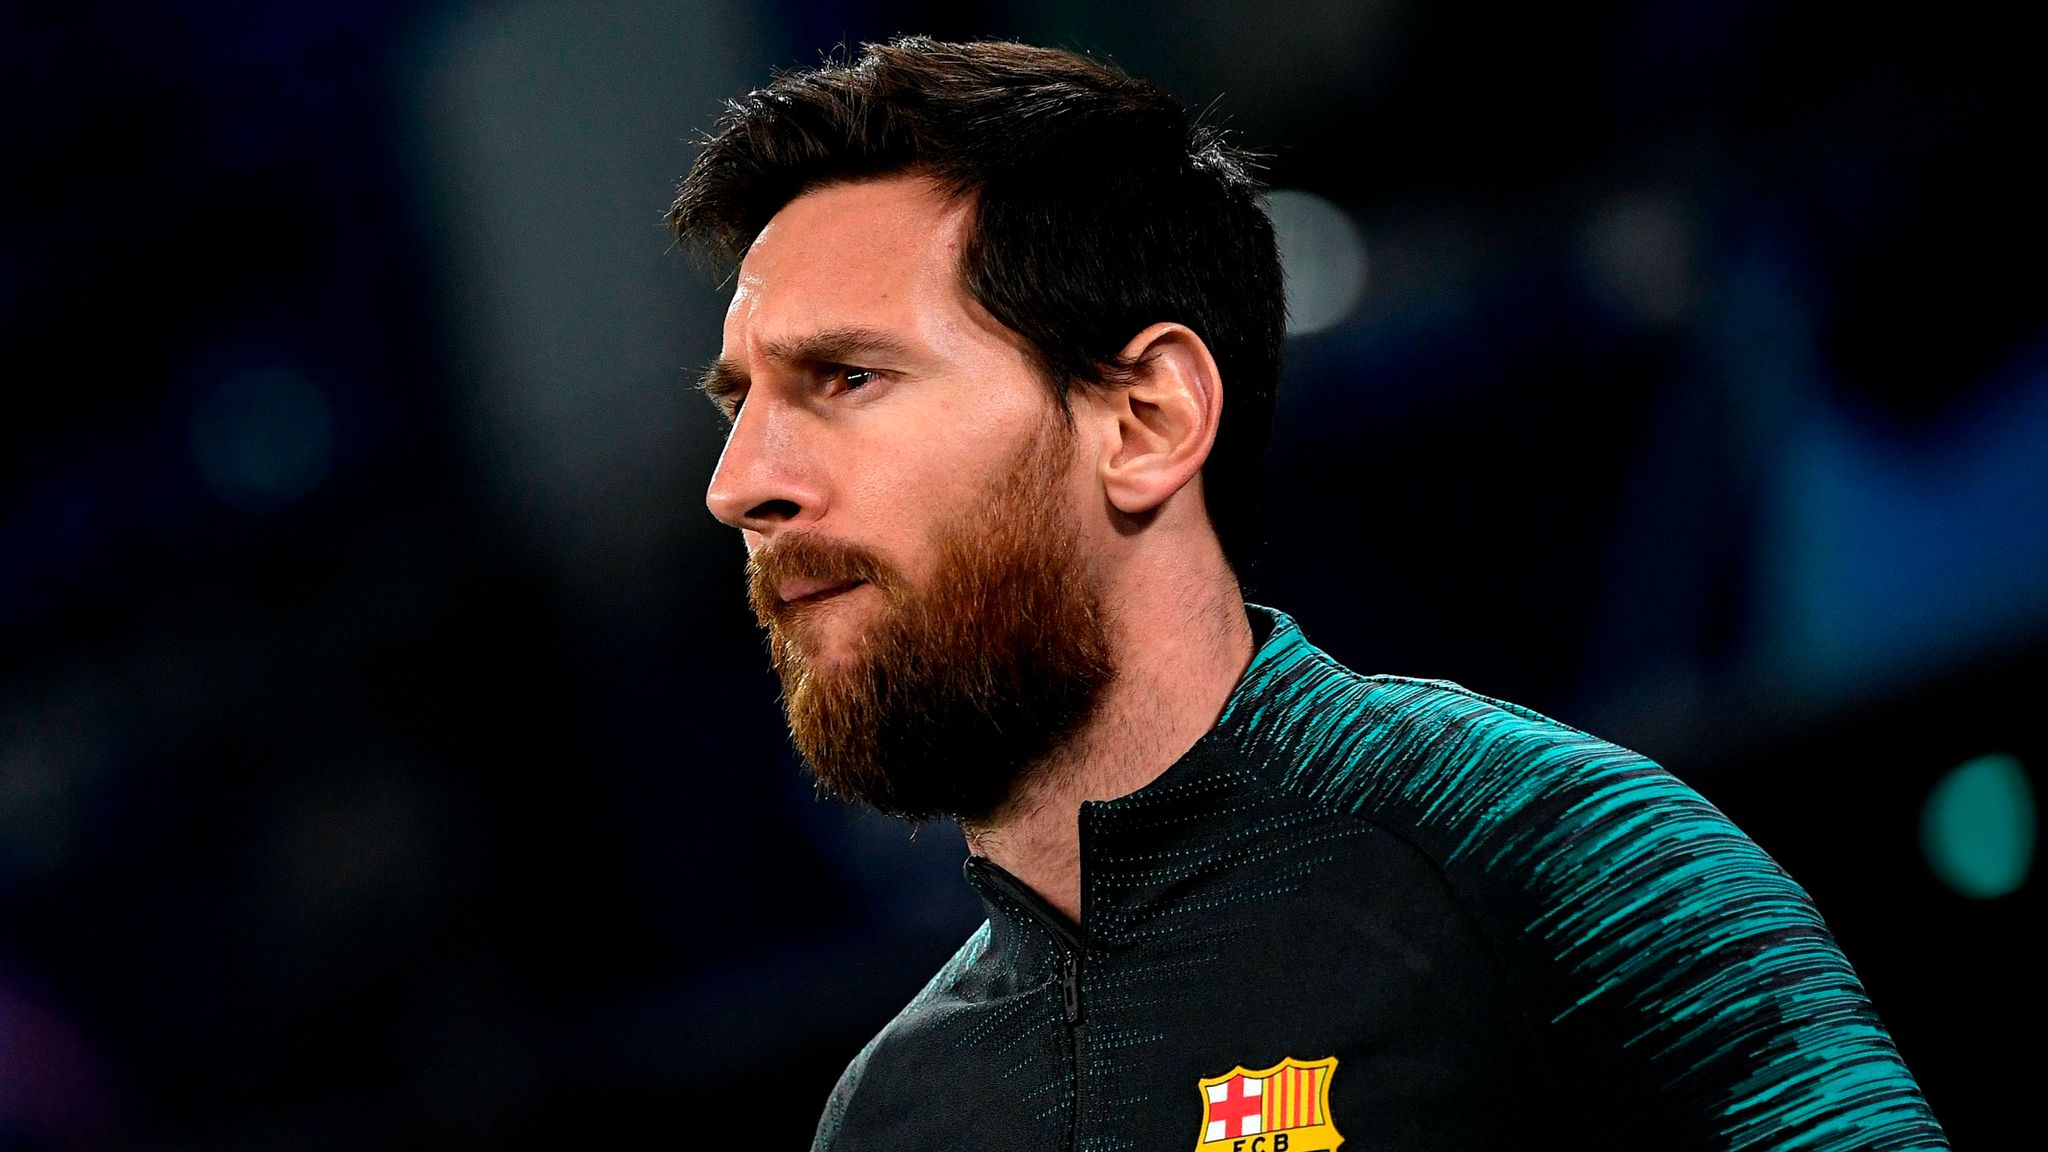 Lionel Messi To Stay At Barcelona Next Season Despite Transfer Row Football News Sky Sports